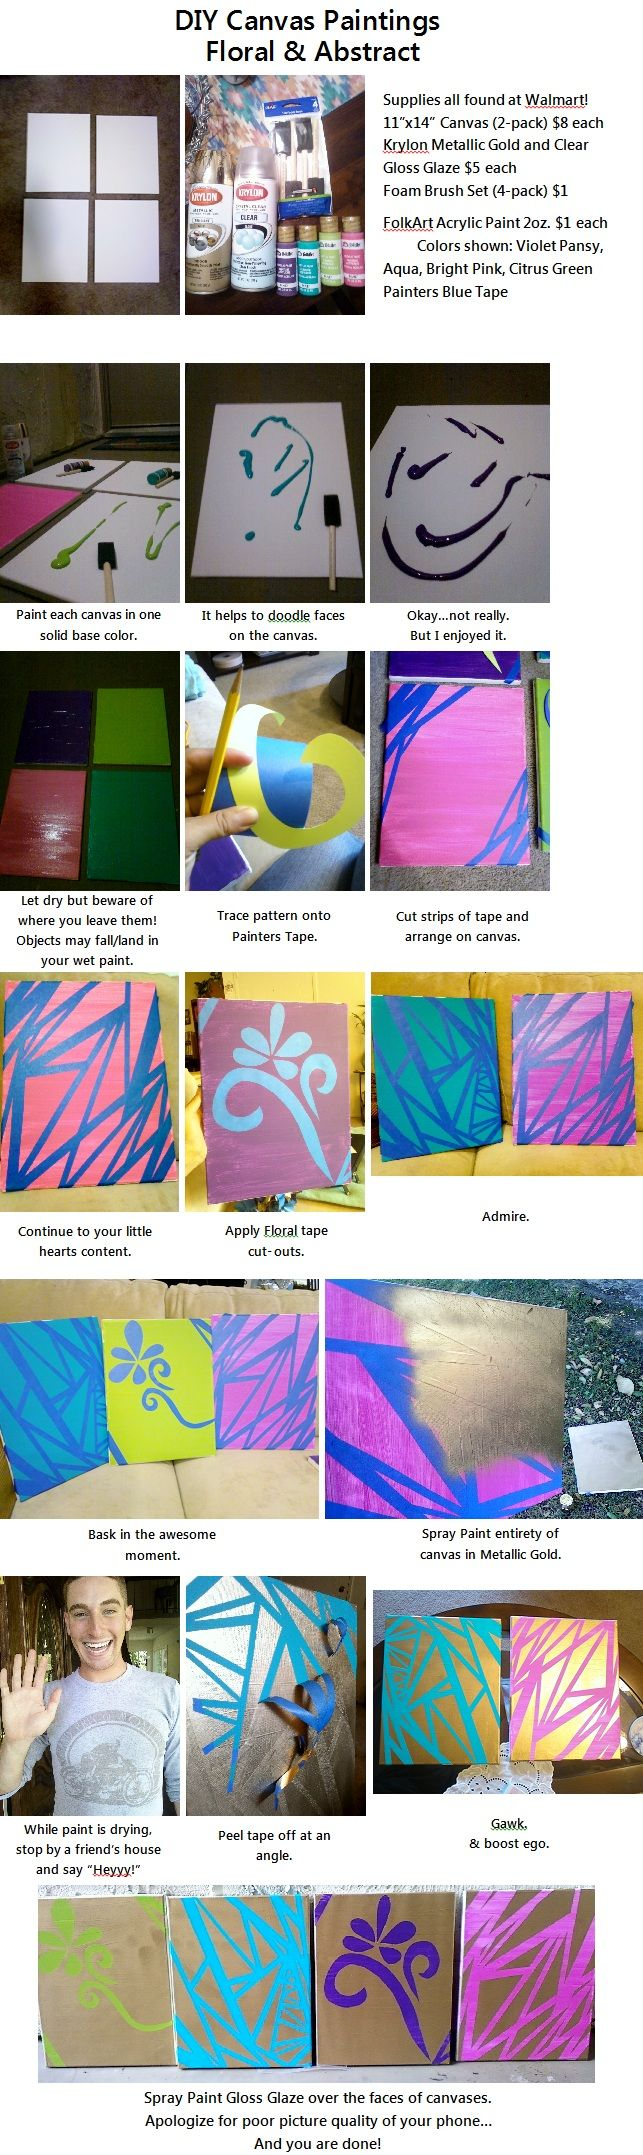 DIY Canvas Painting Craft  In Floral and Abstract